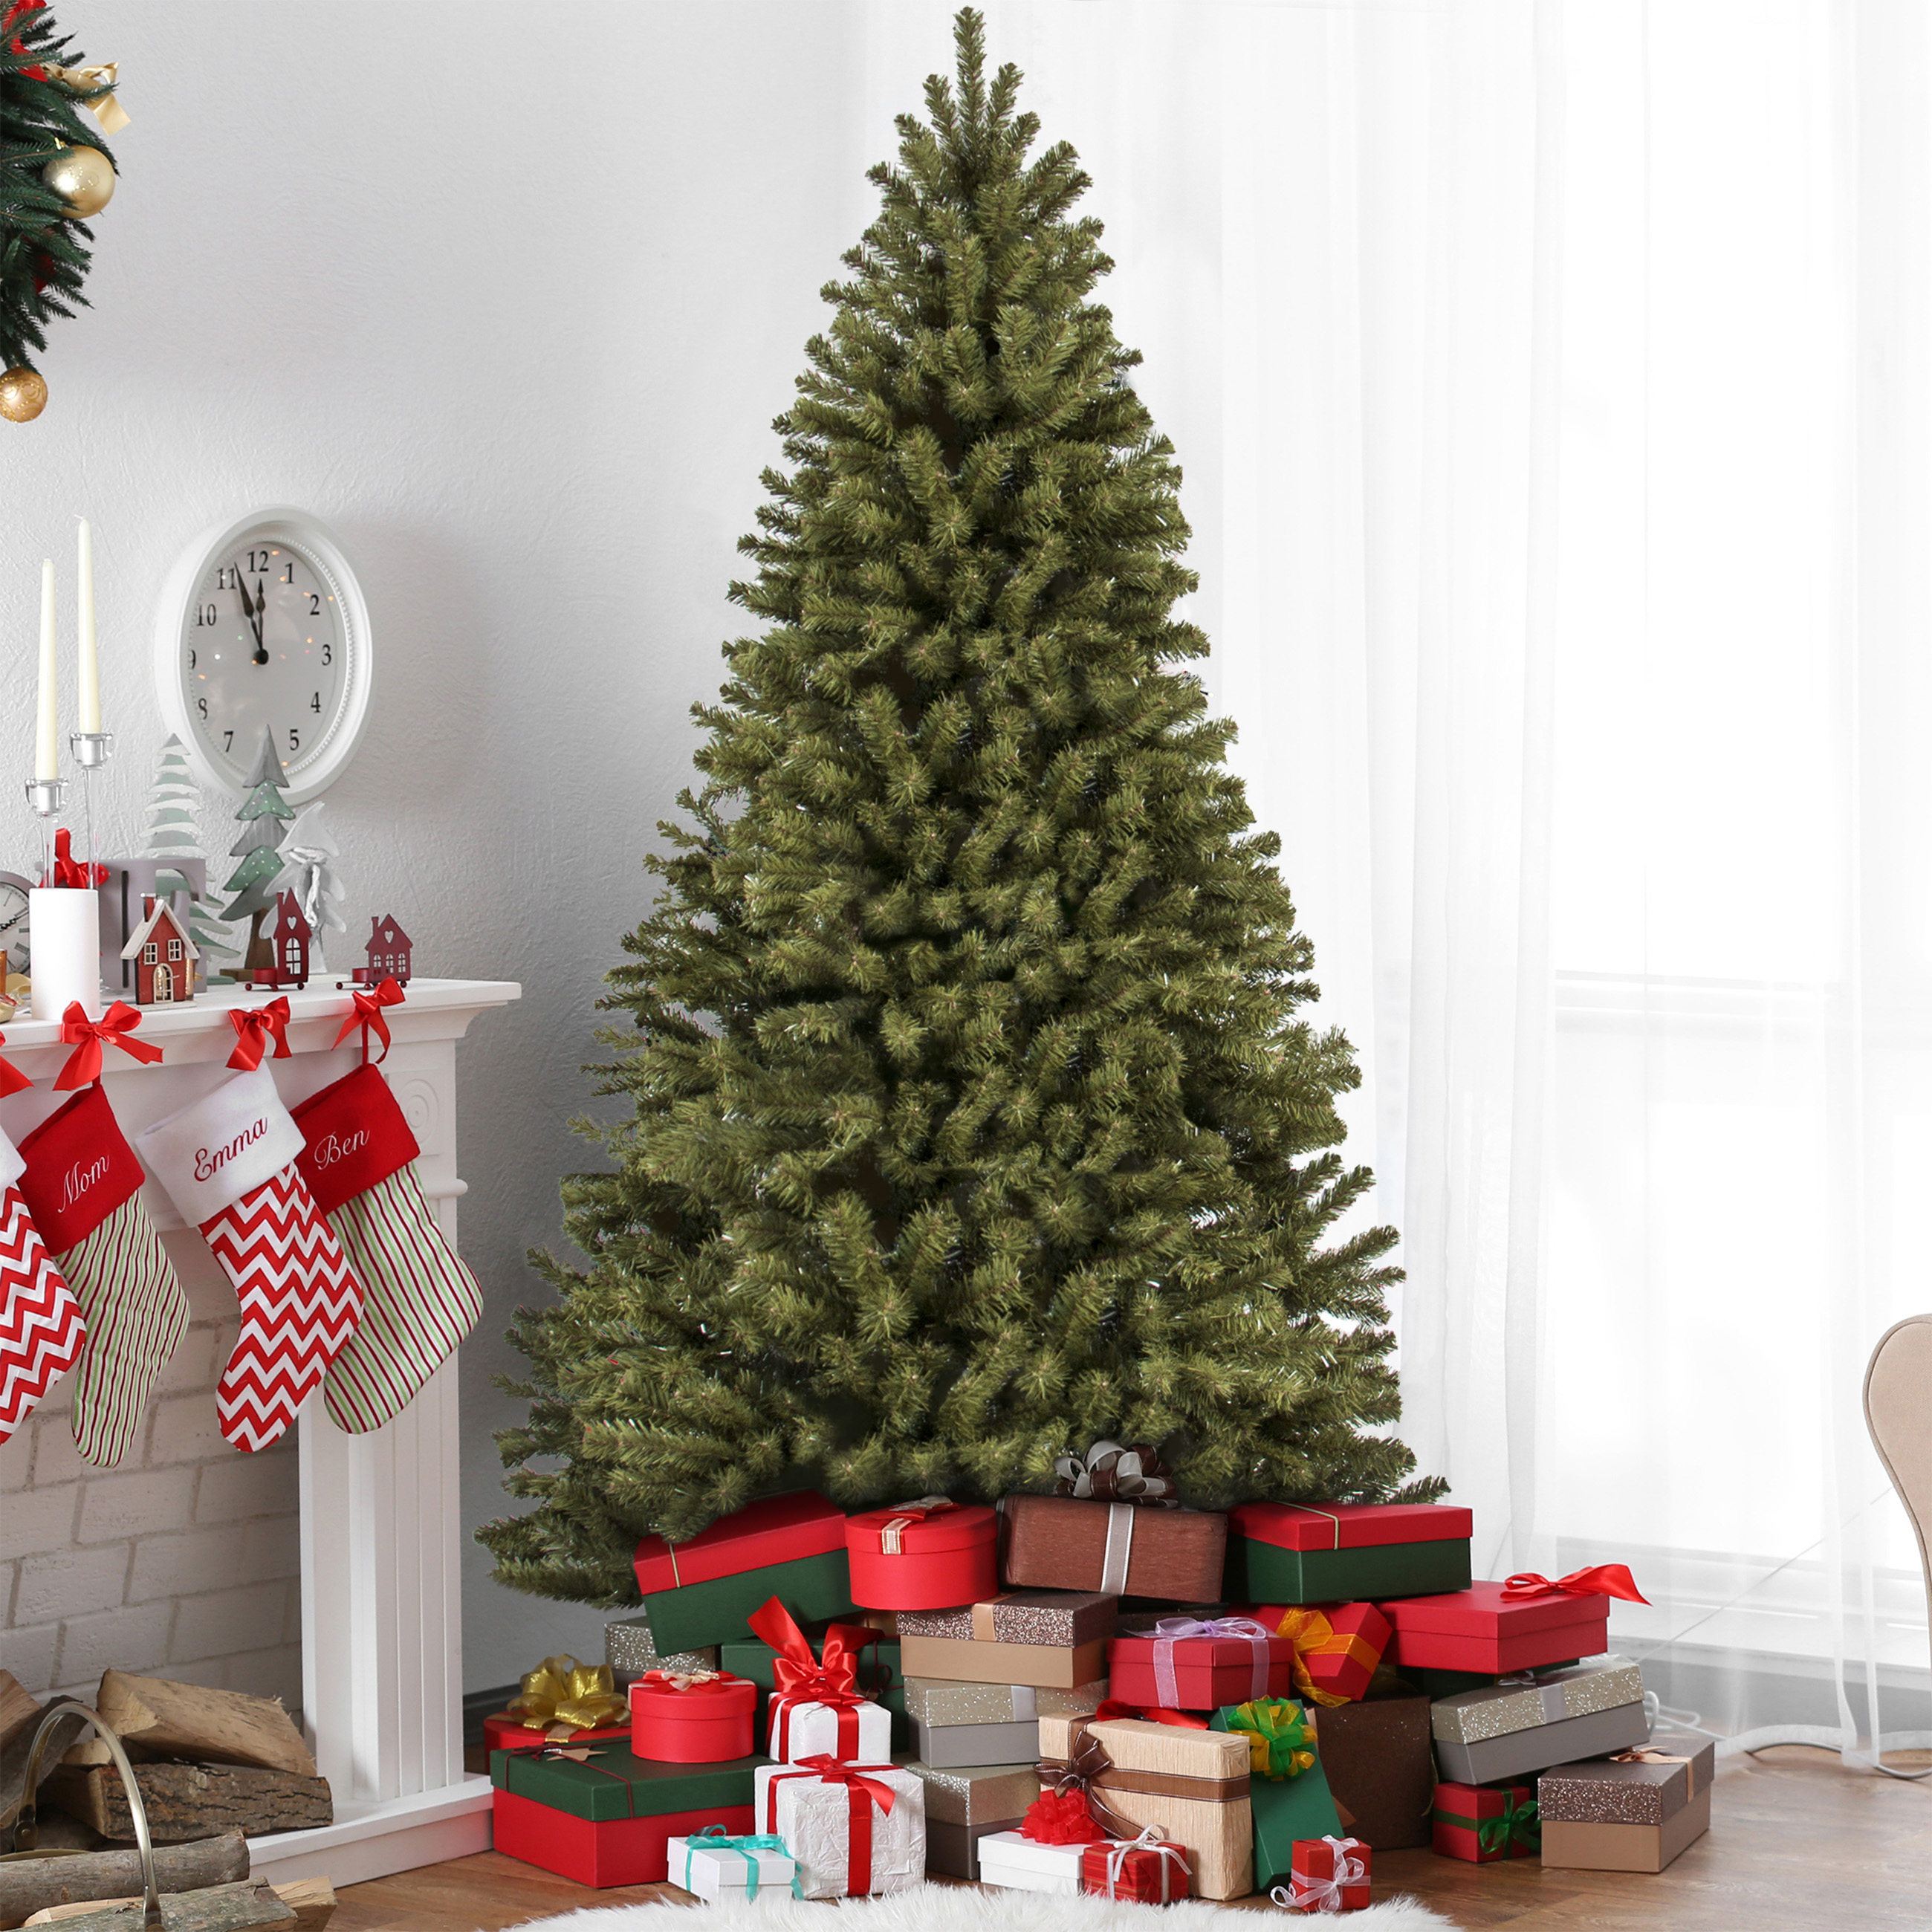 Best Choice Products 7.5FT Premium Spruce Hinged Artificial Christmas Tree w/ Stand